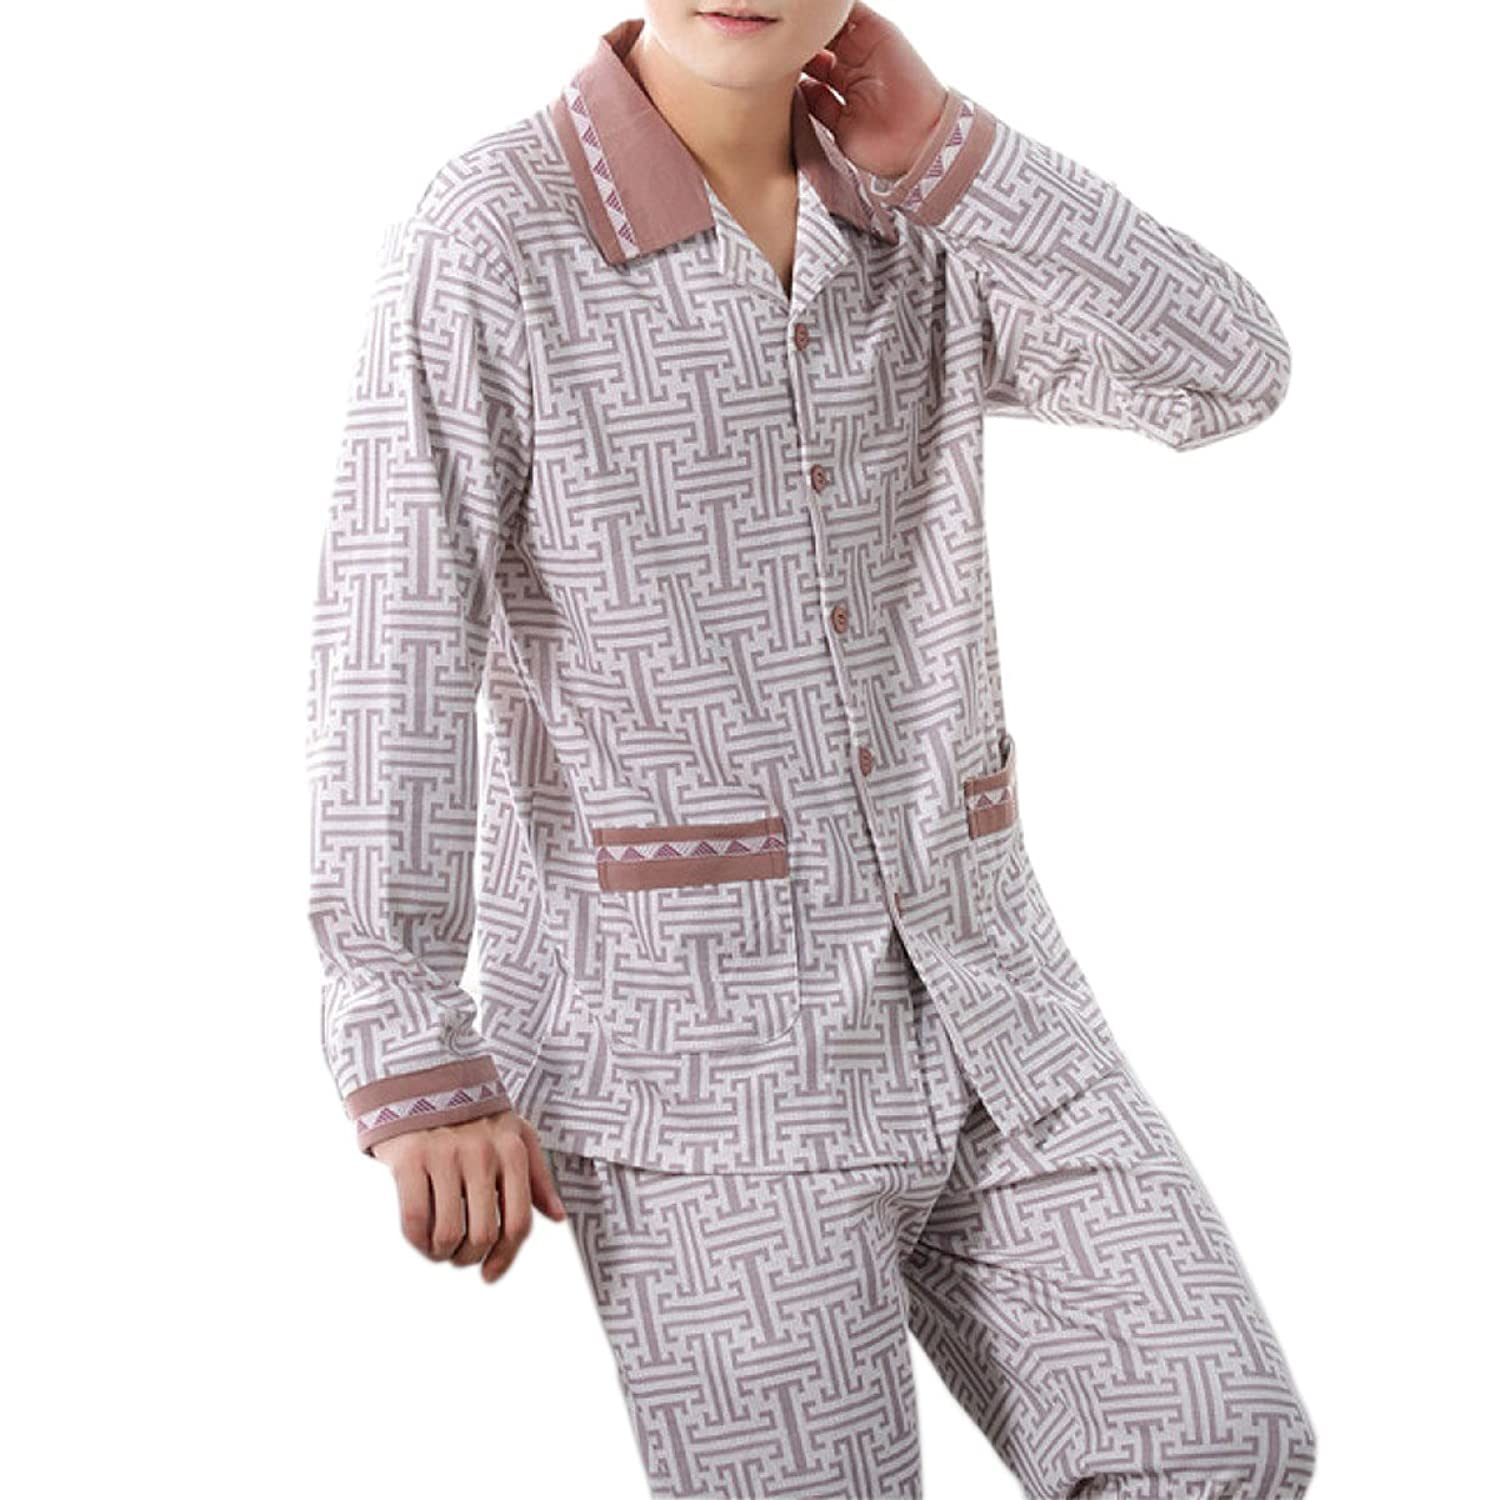 Shallow Spring And Autumn Men's Middle-aged Cotton Large Size Pajamas Home Service Suits And More Sizes